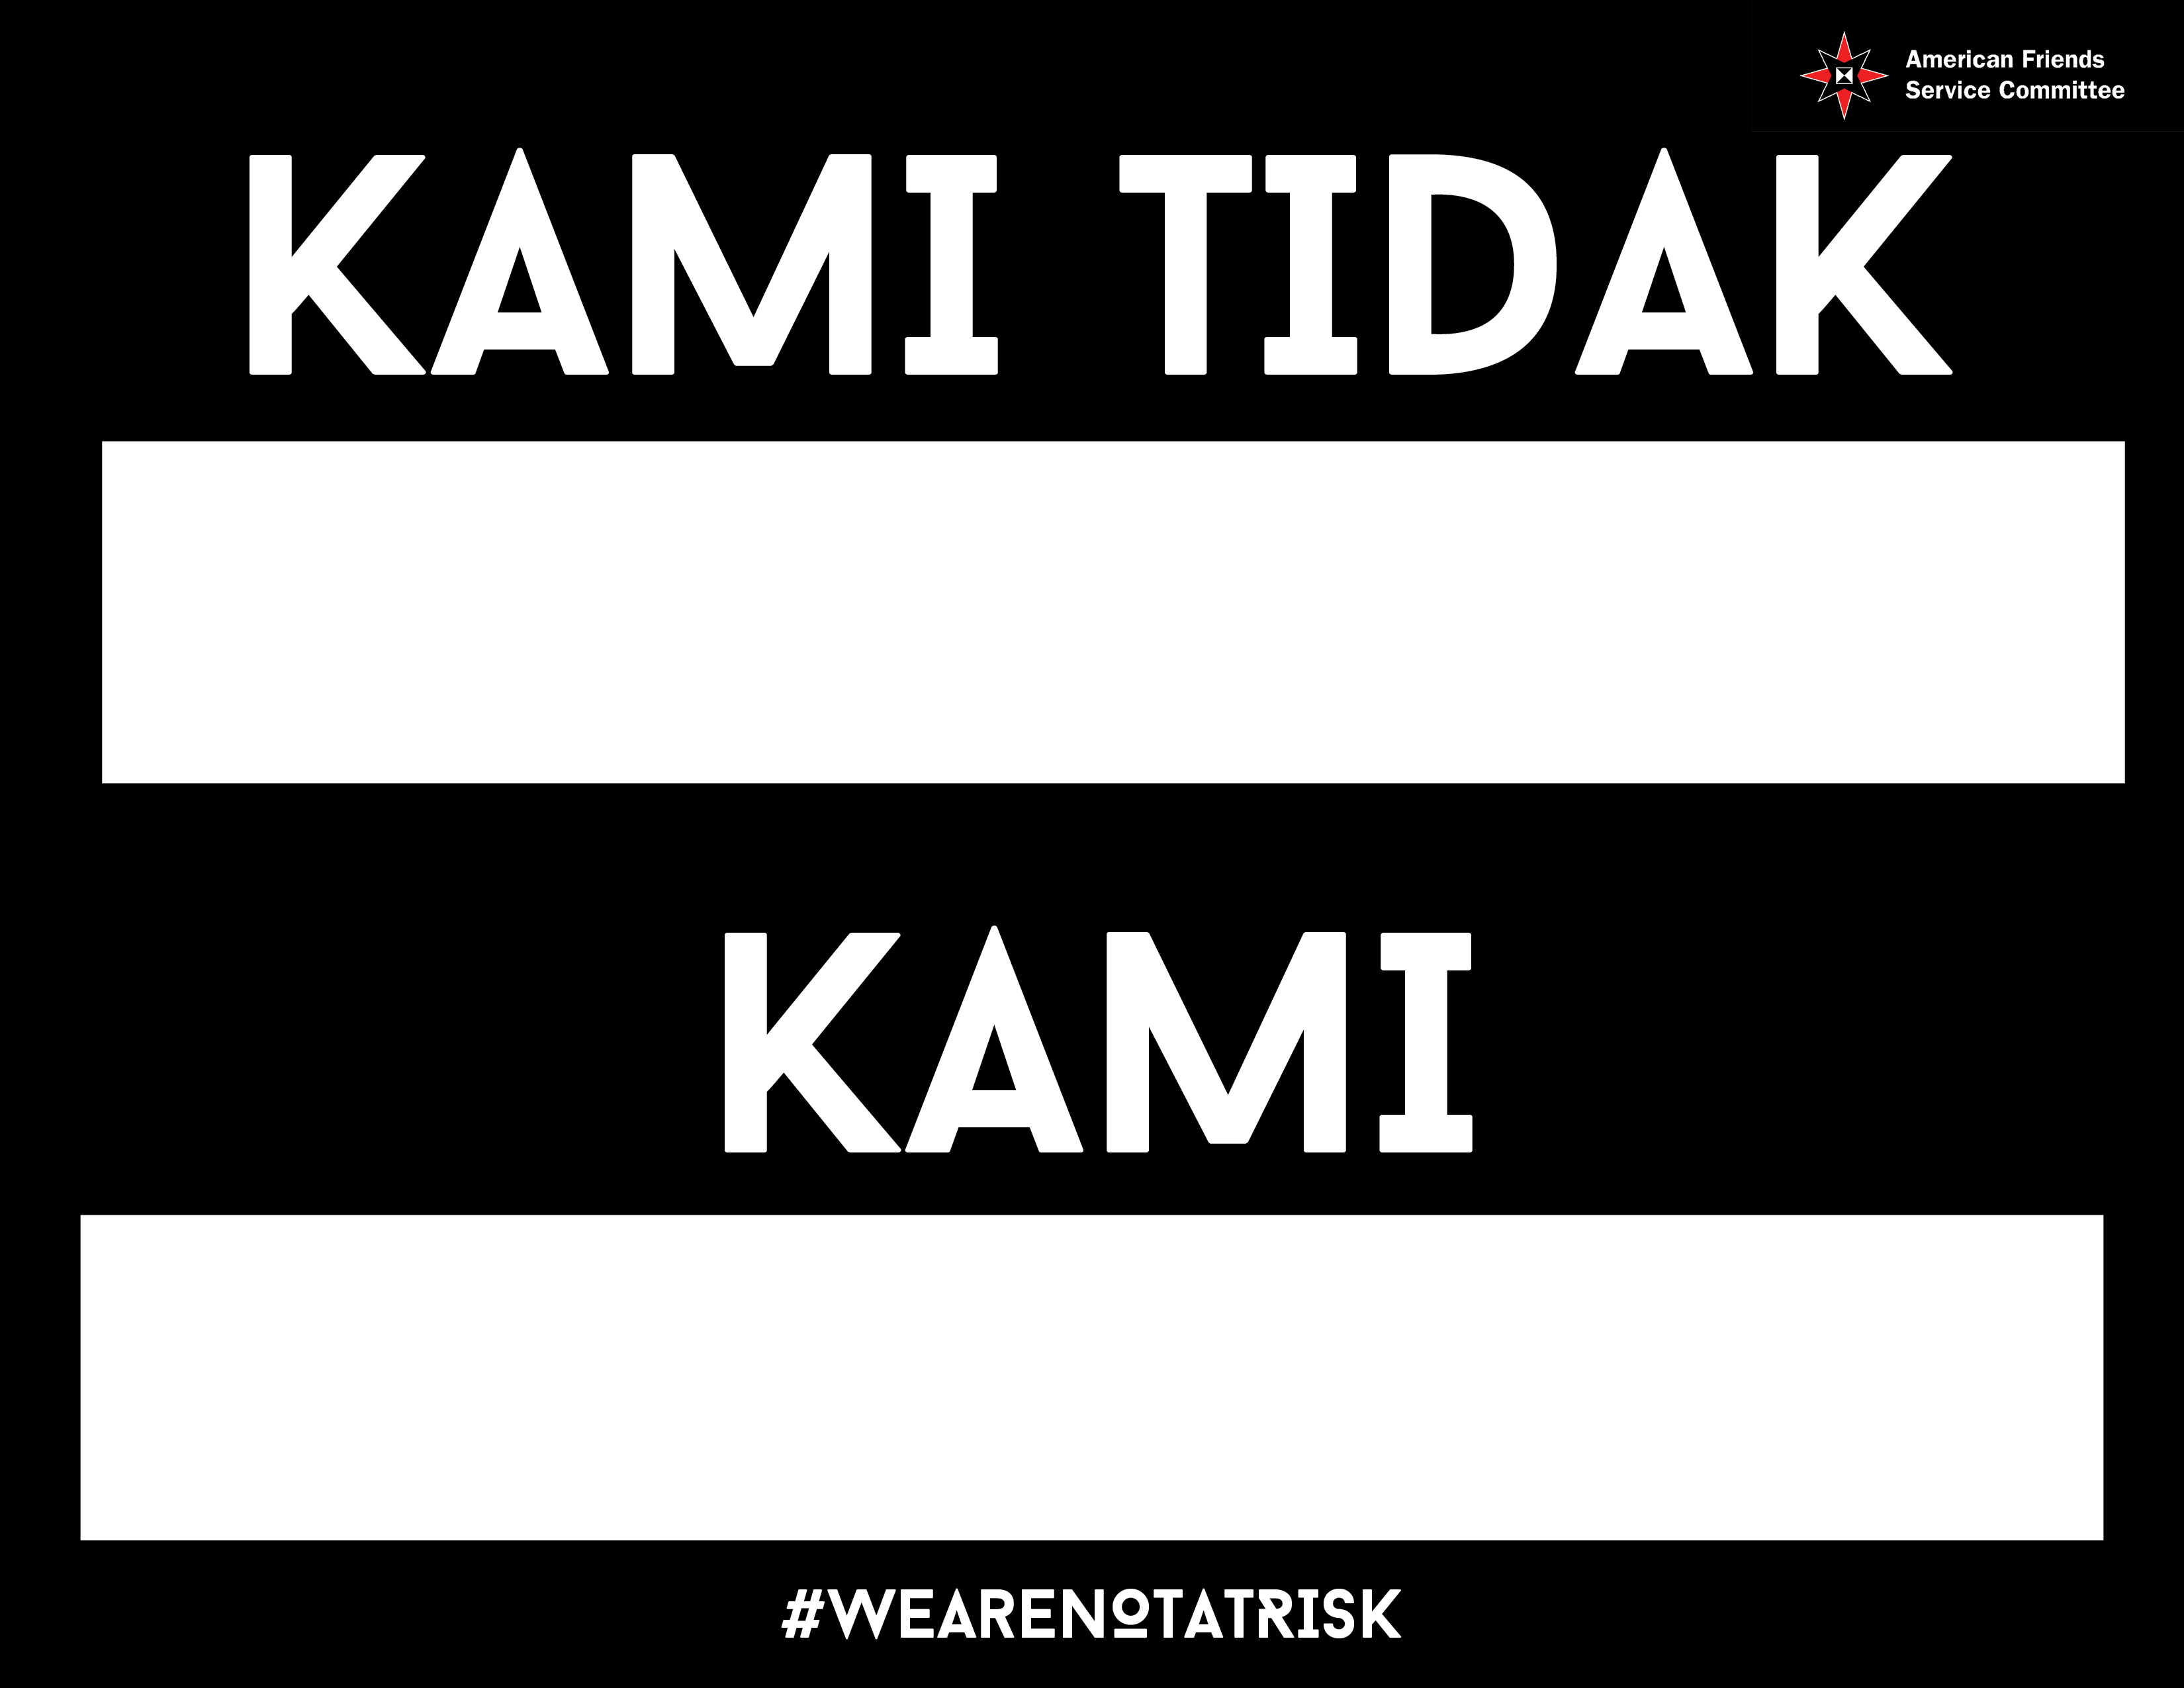 We are not at risk sign_Indonesian